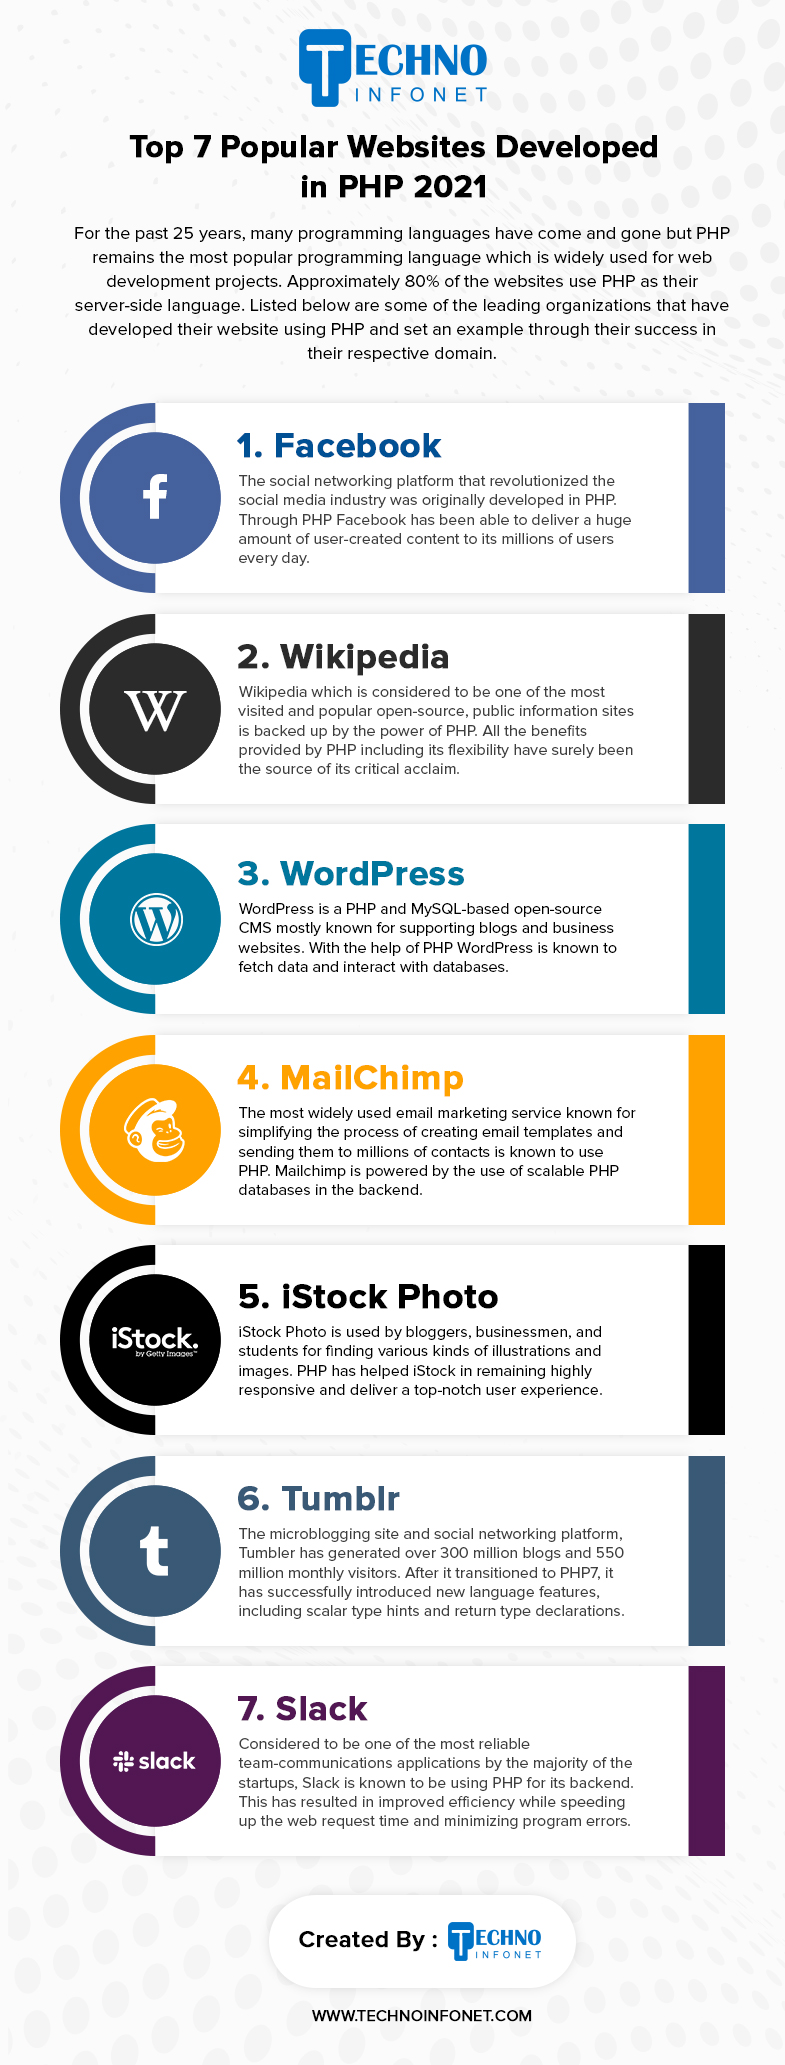 Top 7 global websites that uses PHP